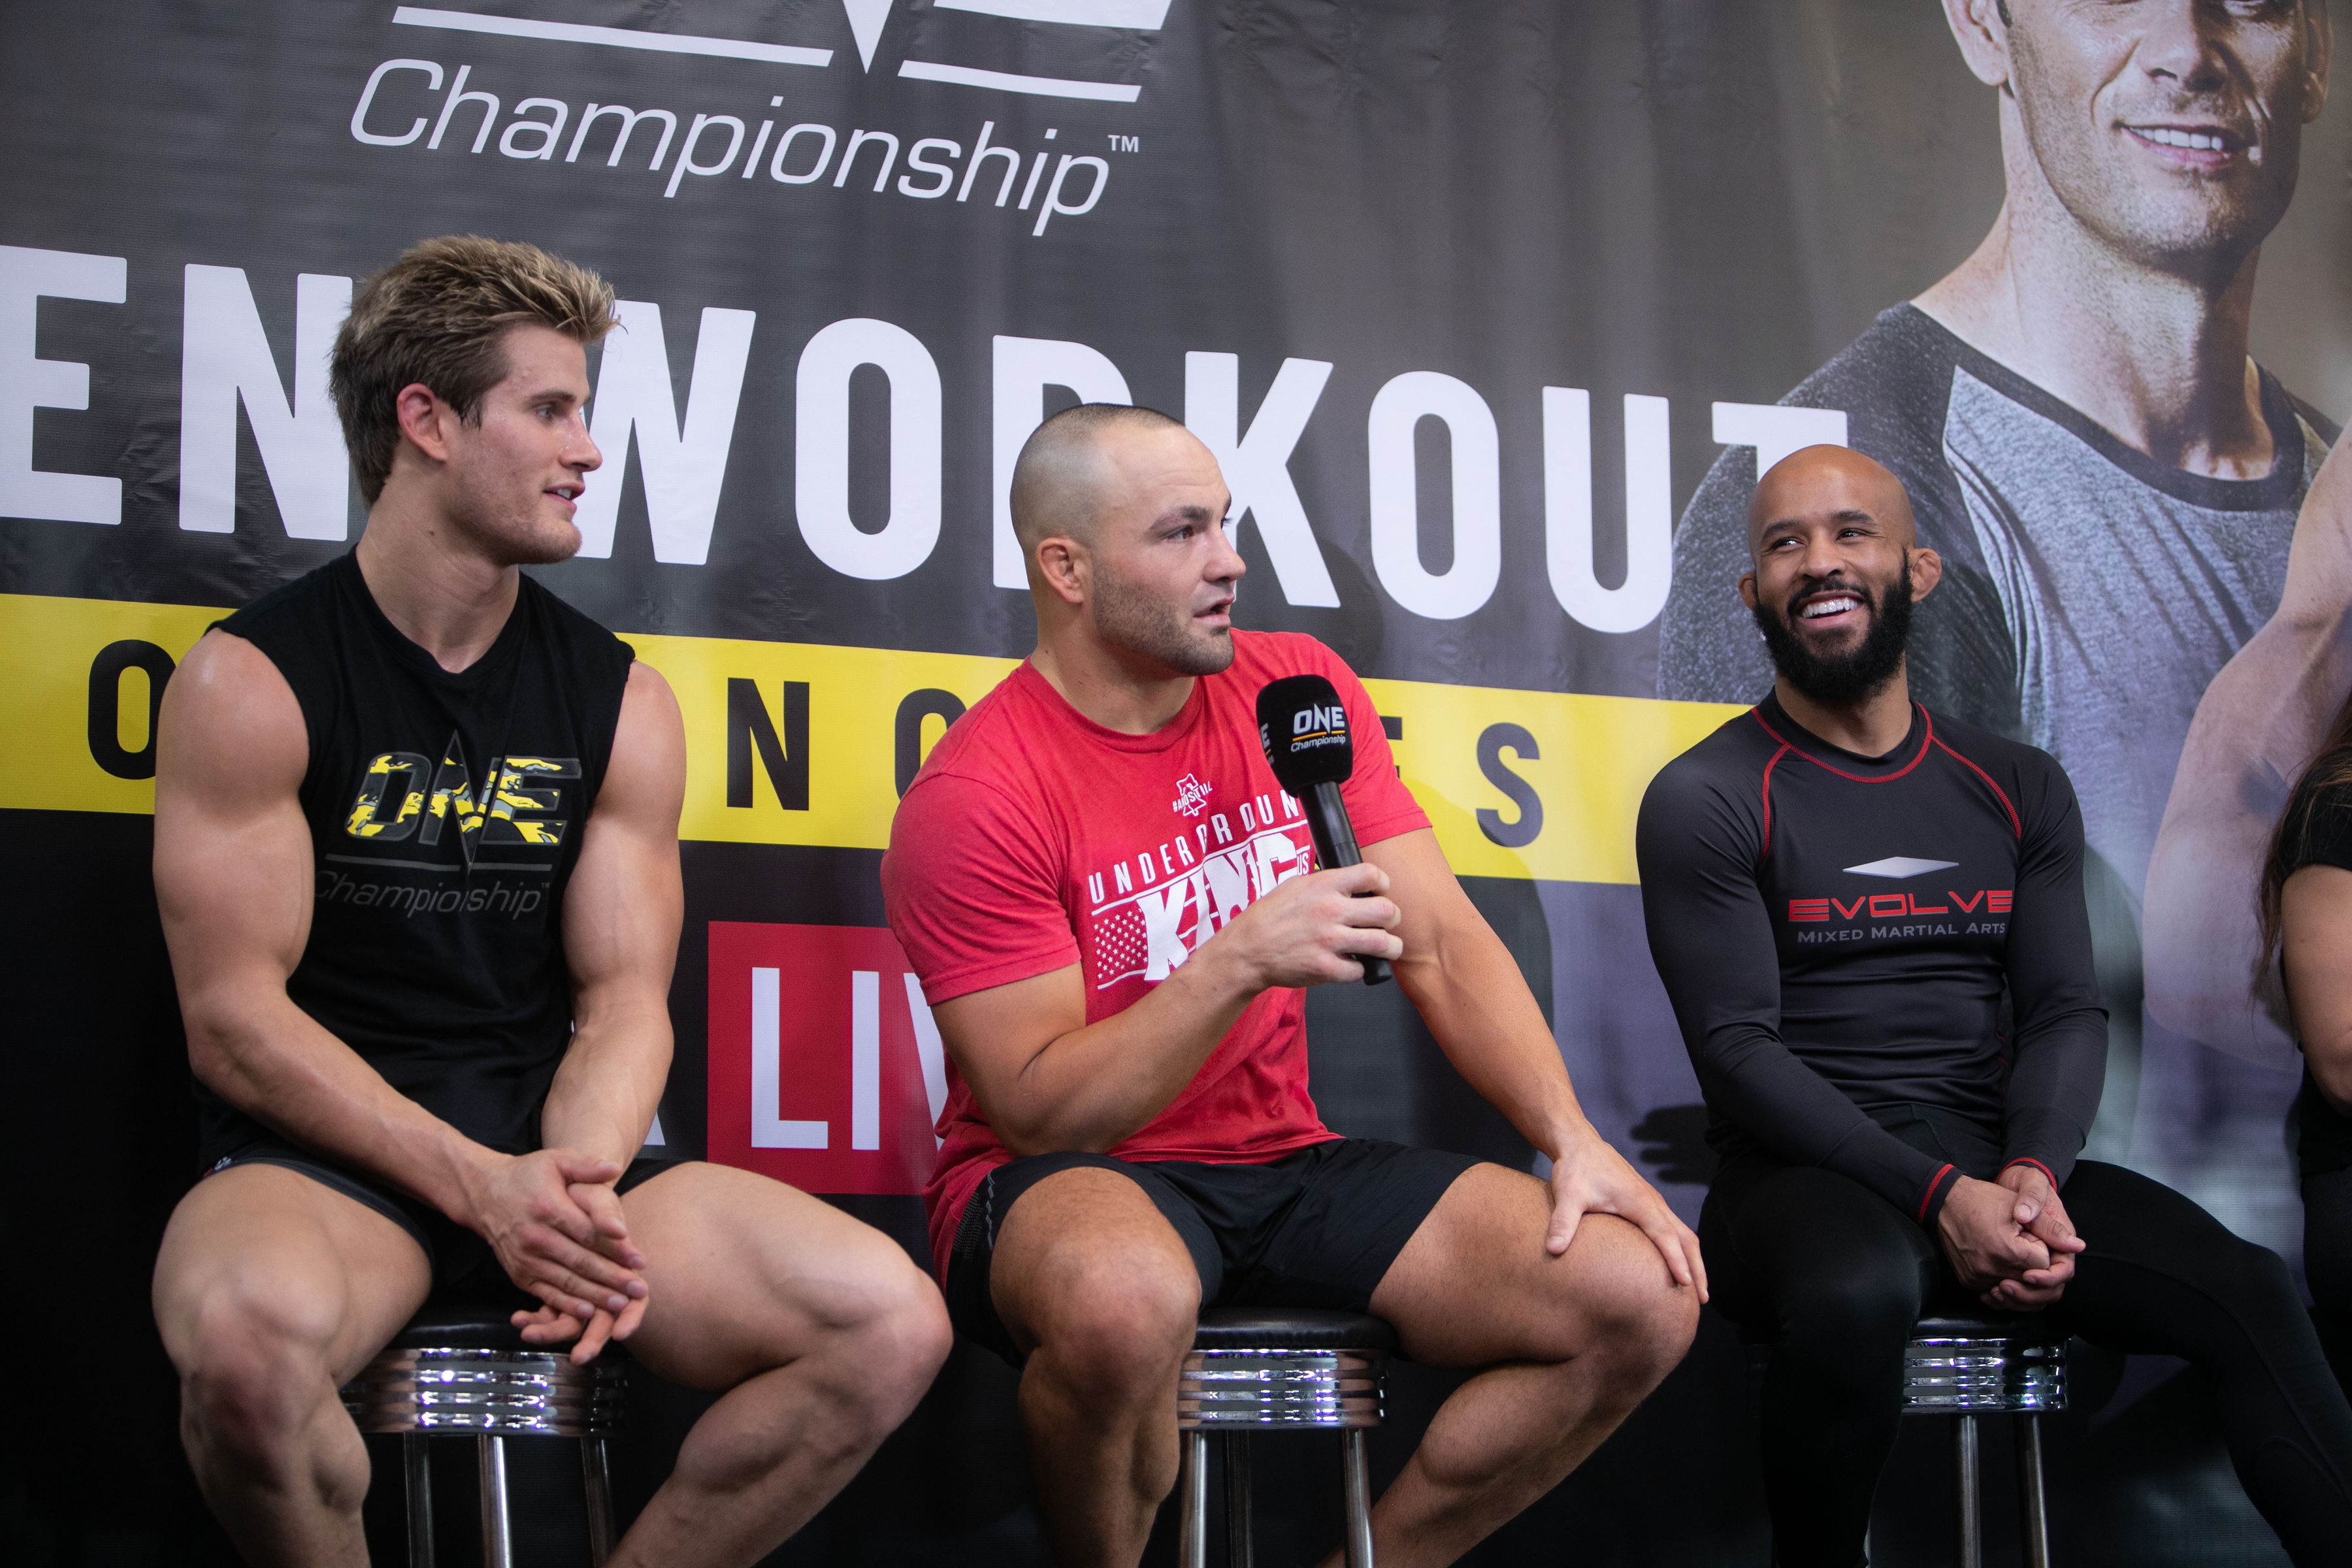 DEMETRIOUS JOHNSON, EDDIE ALVAREZ, AND SAGE NORTHCUTT IN ONE CHAMPIONSHIP LA OPEN WORKOUT -